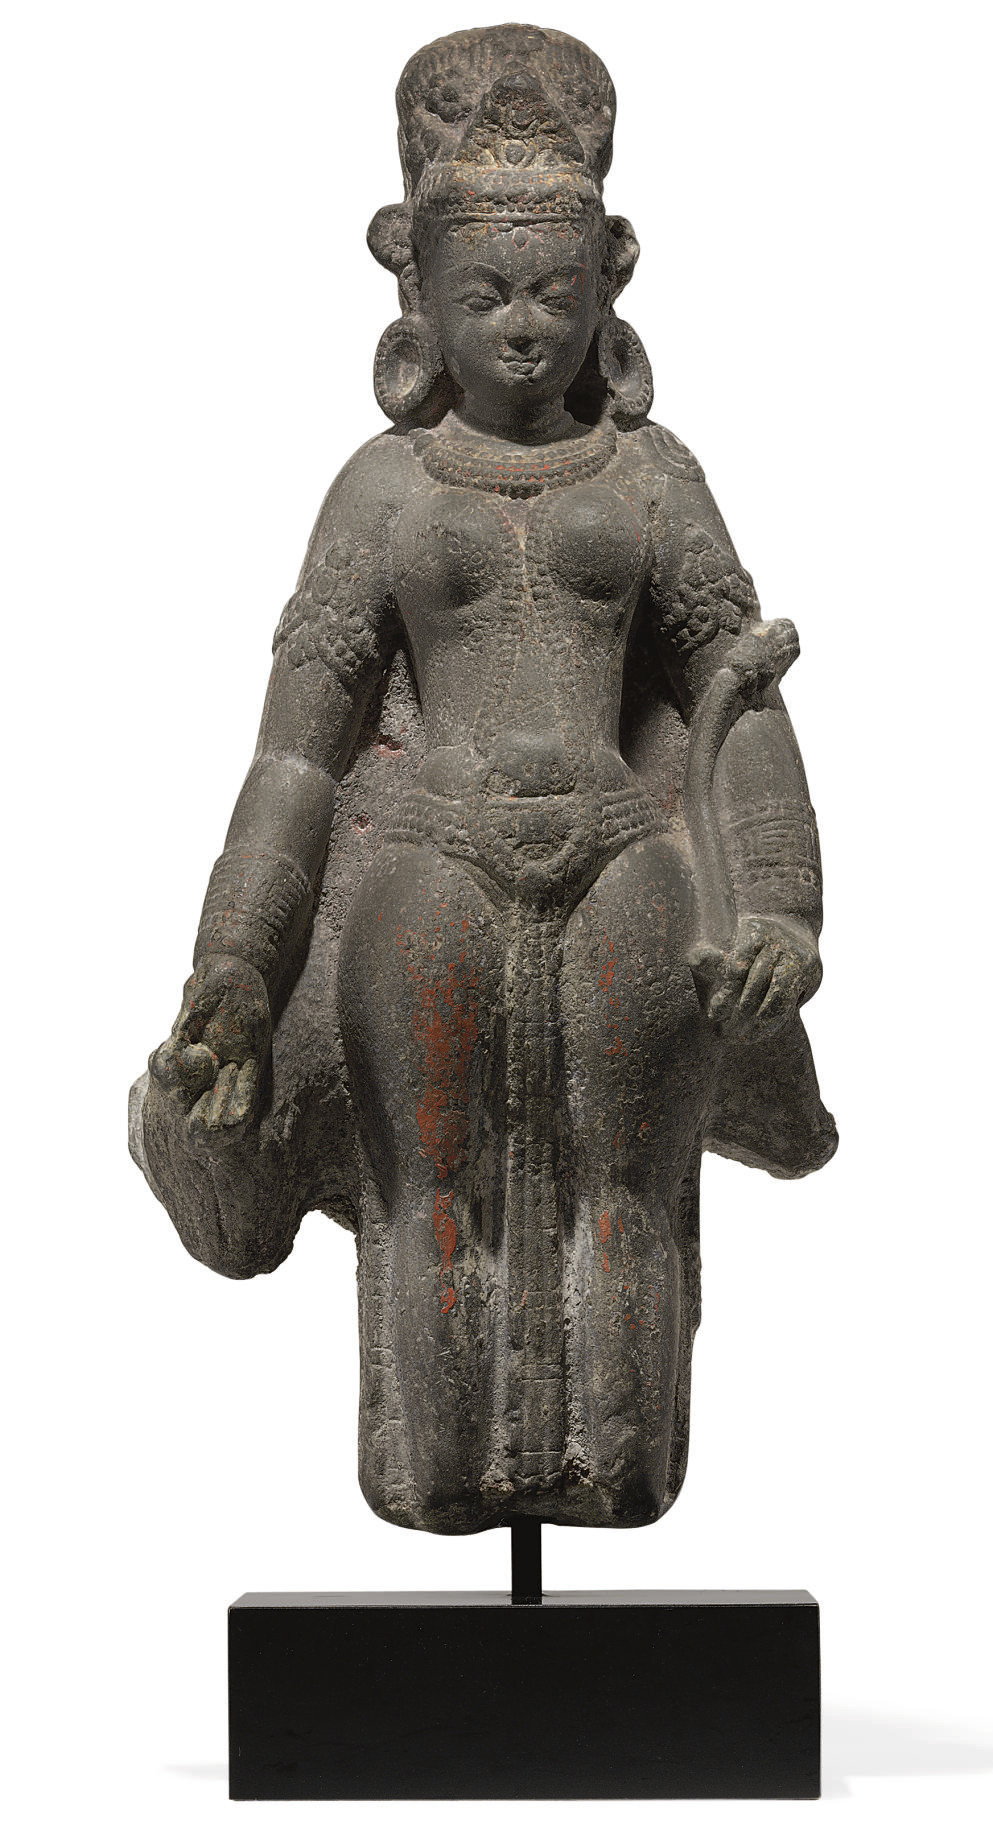 A sandstone figure of Devi